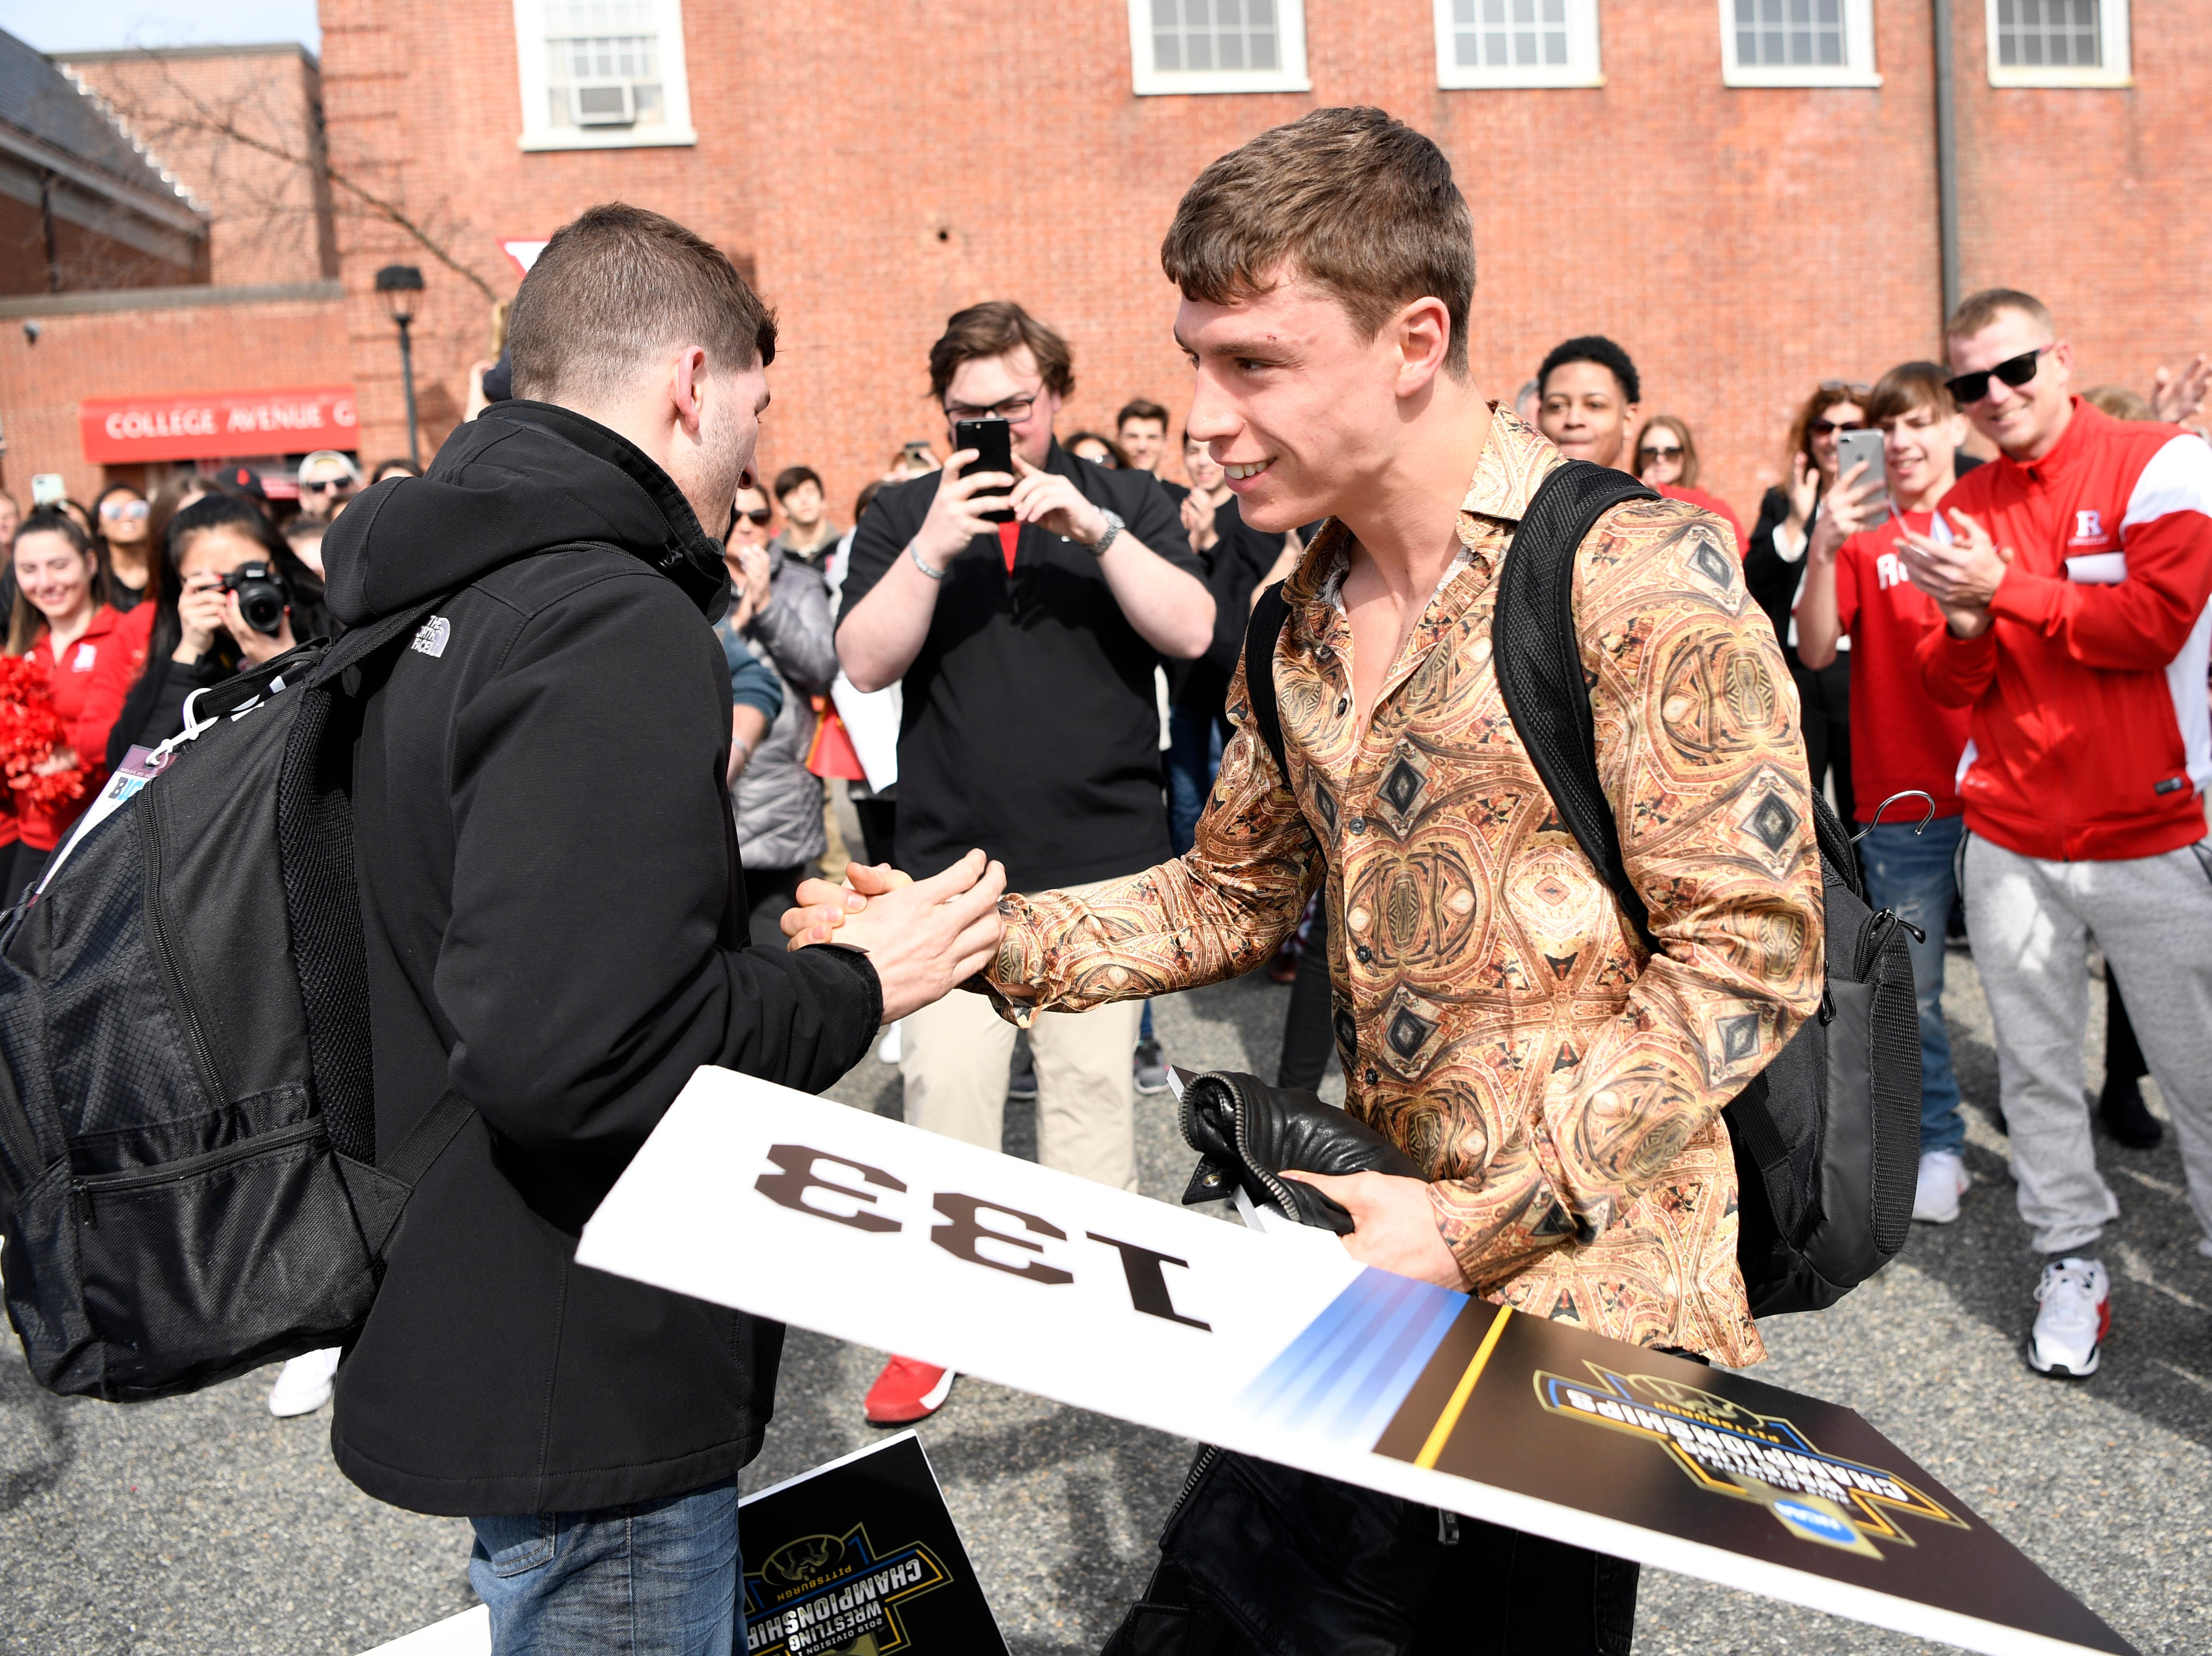 Rutgers wrestling: Champs Nick Suriano, Anthony Ashnault get College Avenue heroes' welcome